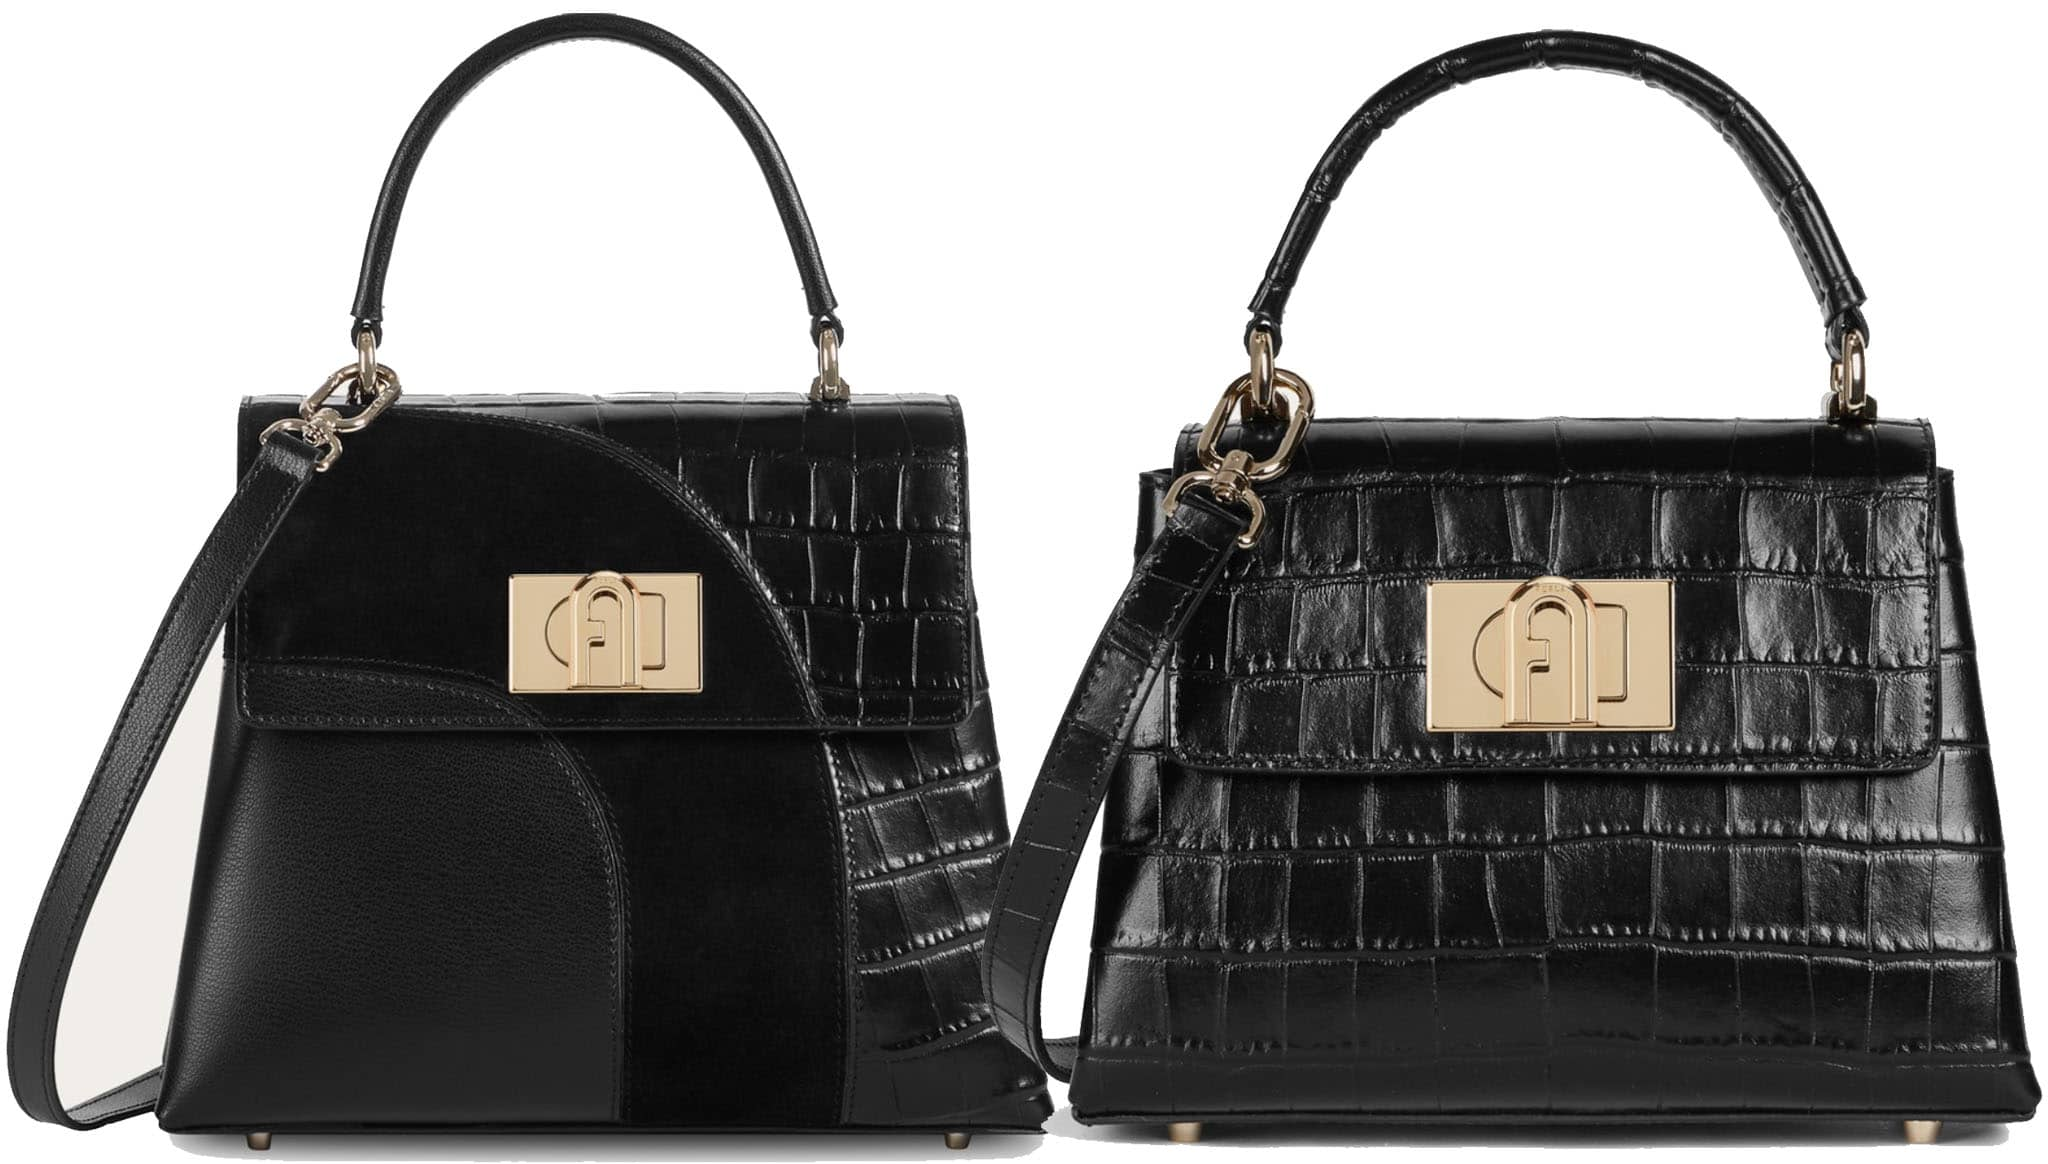 Made from croc0skin calfskin leather, the 1927 features a sophisticated look with a metal Arch logo turnlock closure